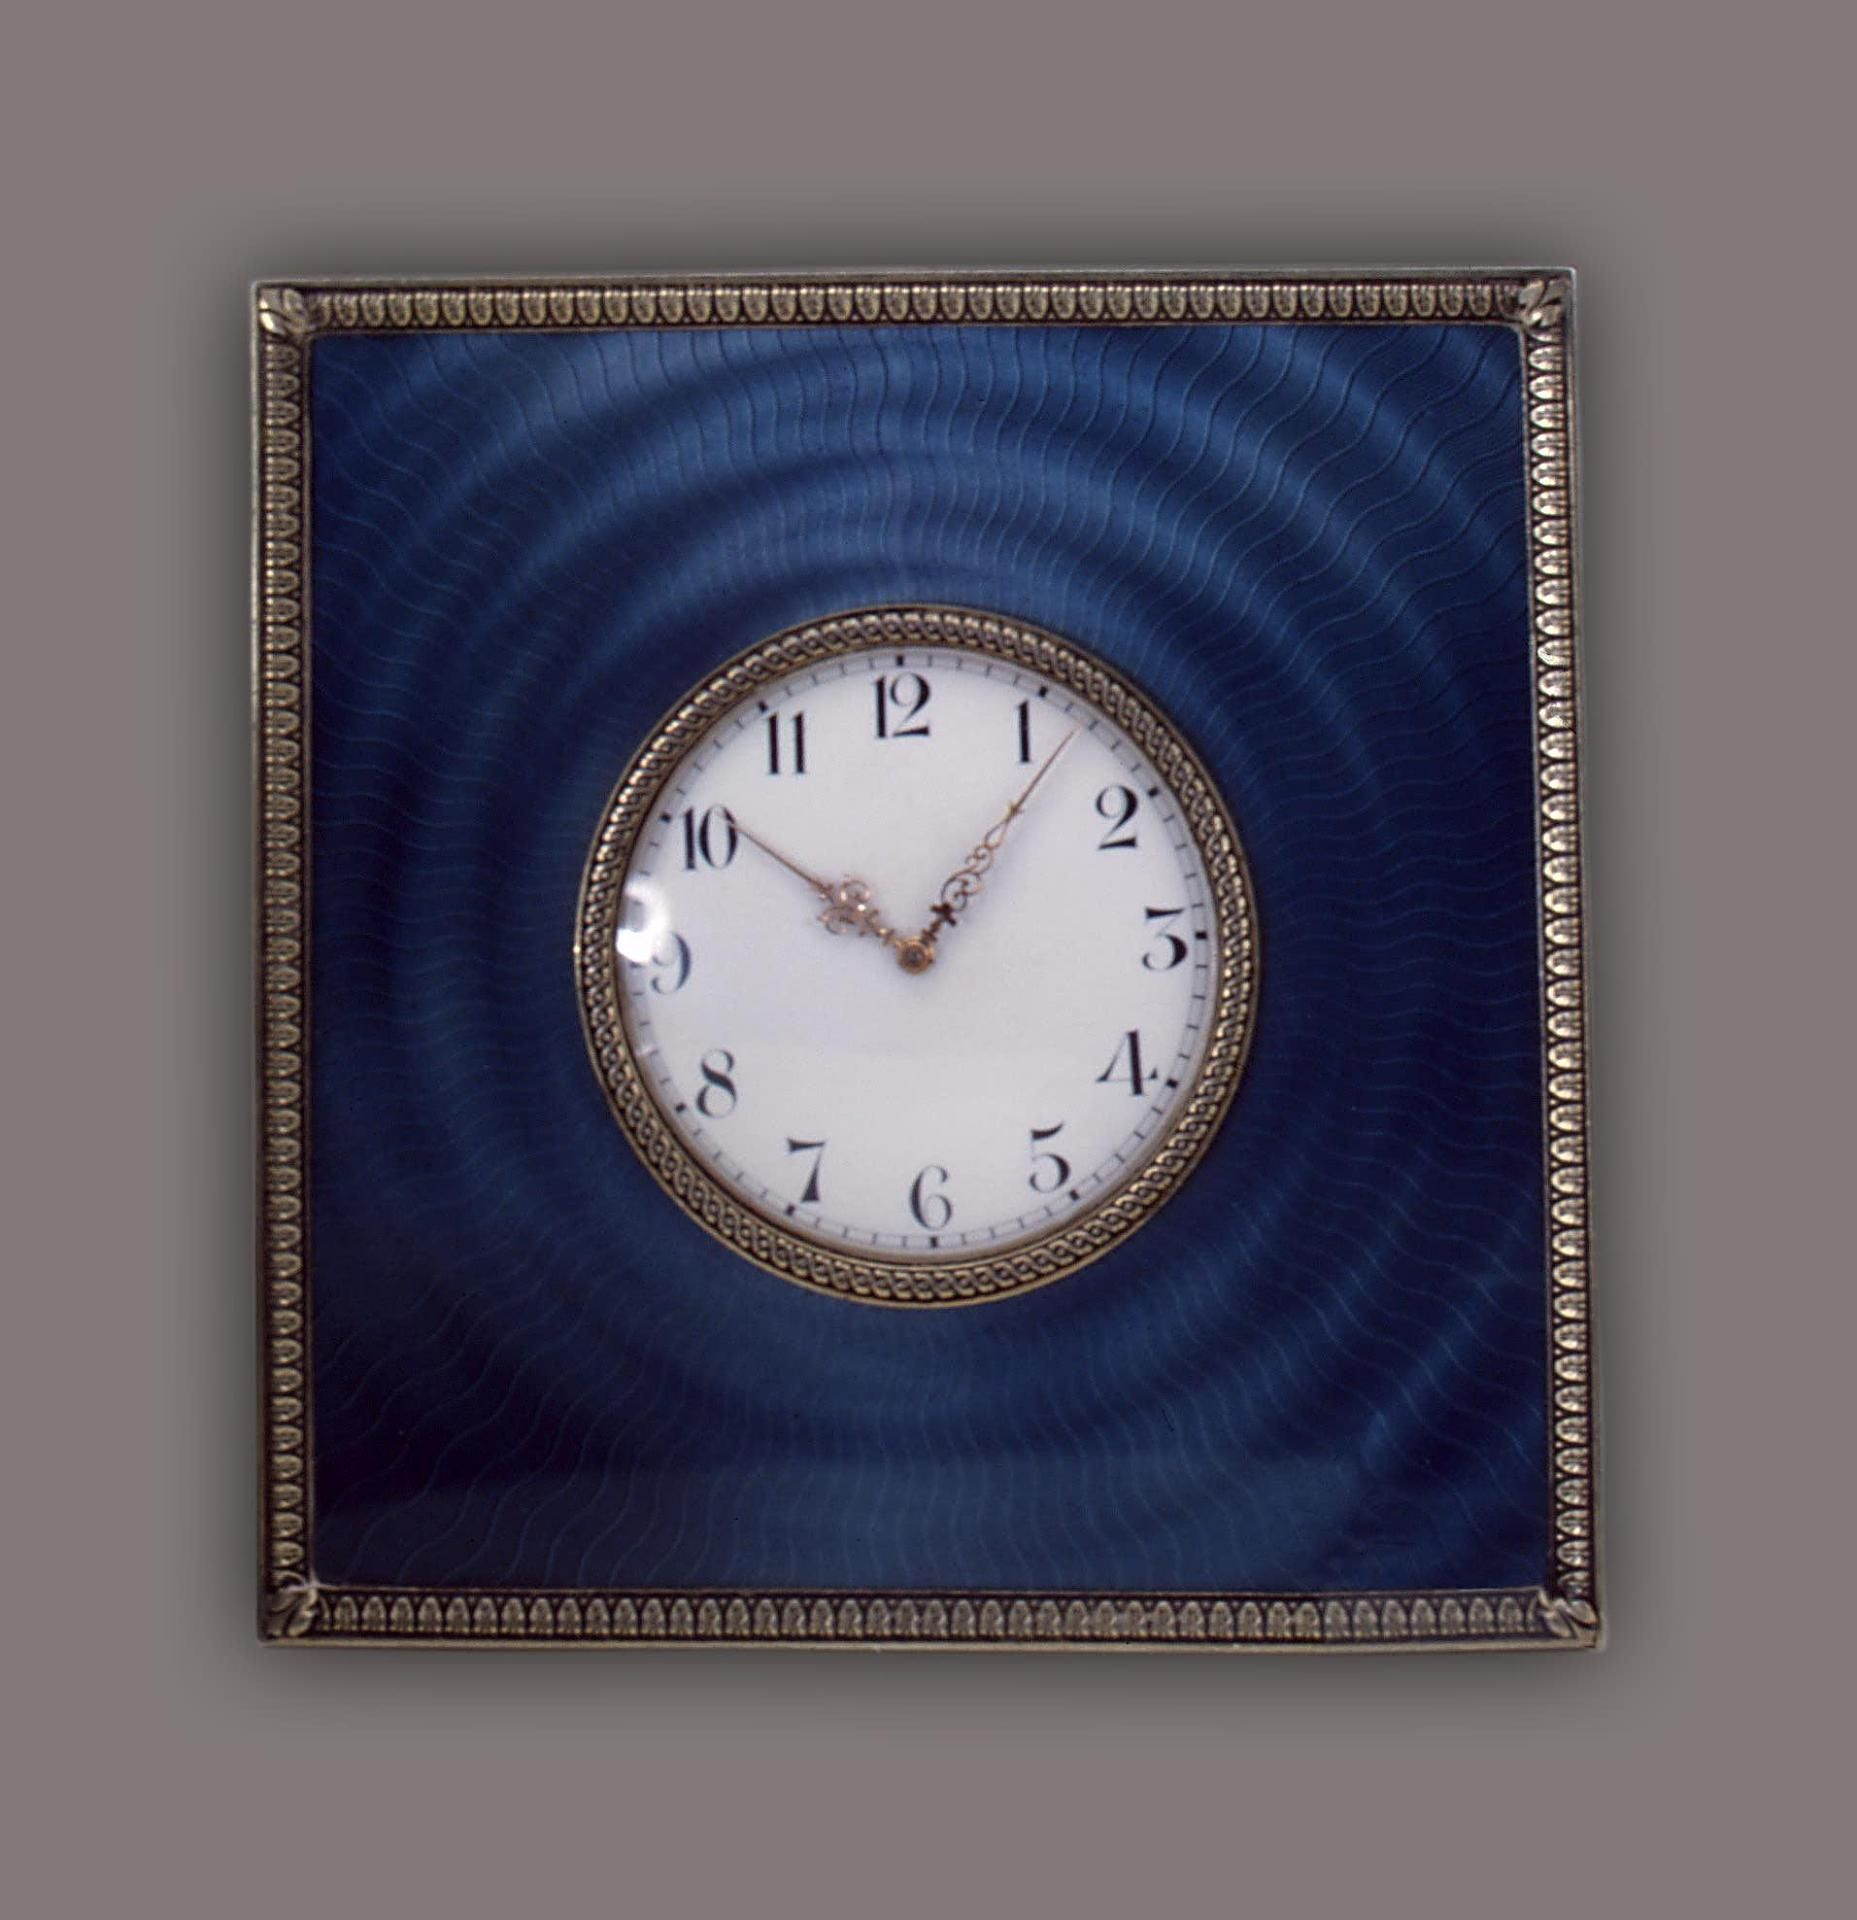 Table clock faberge pinterest russian art table clock amipublicfo Images